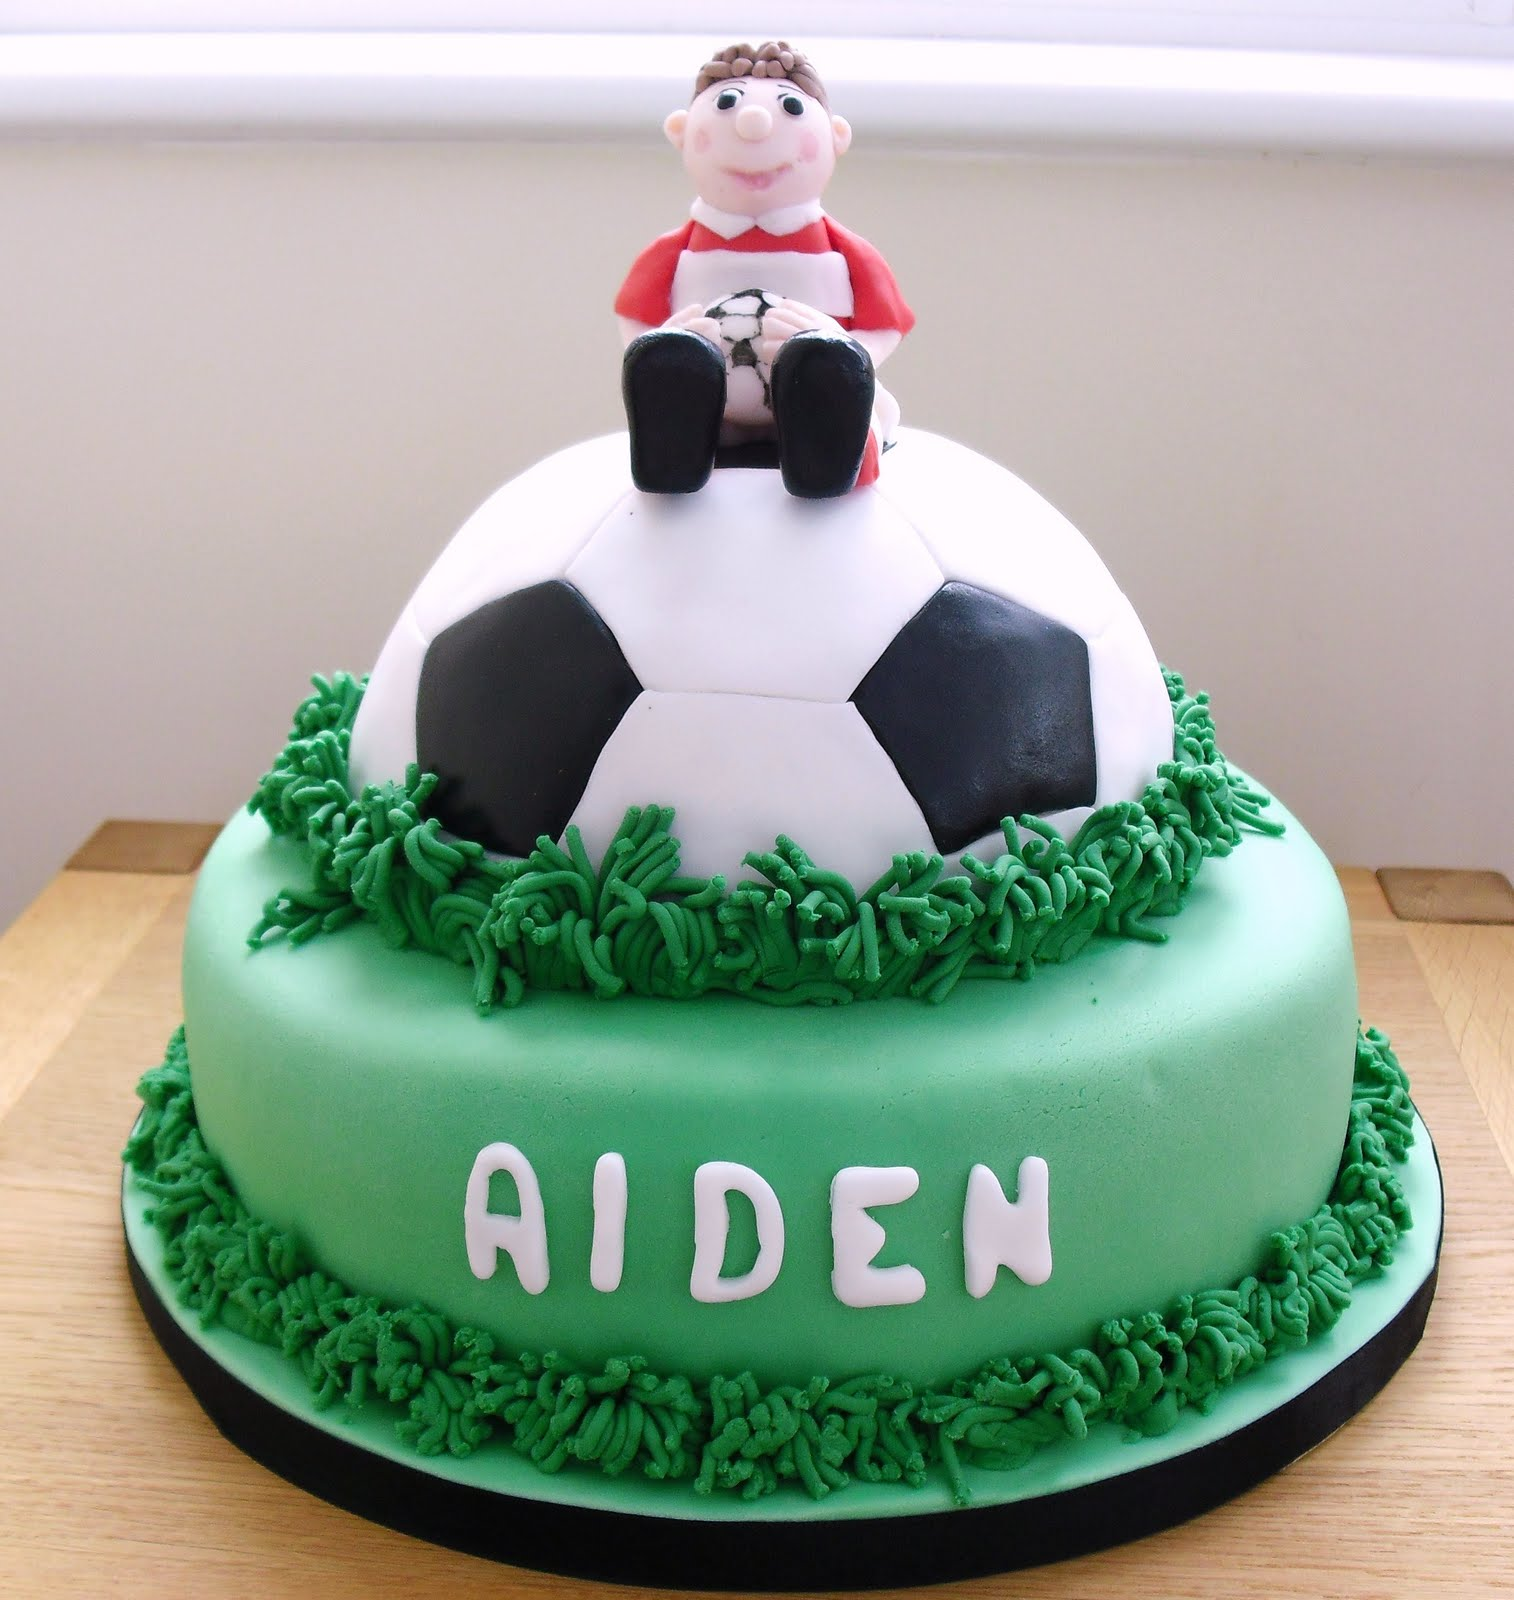 Football Cake Decorating Ideas How To Make : Football Cakes   Decoration Ideas Little Birthday Cakes